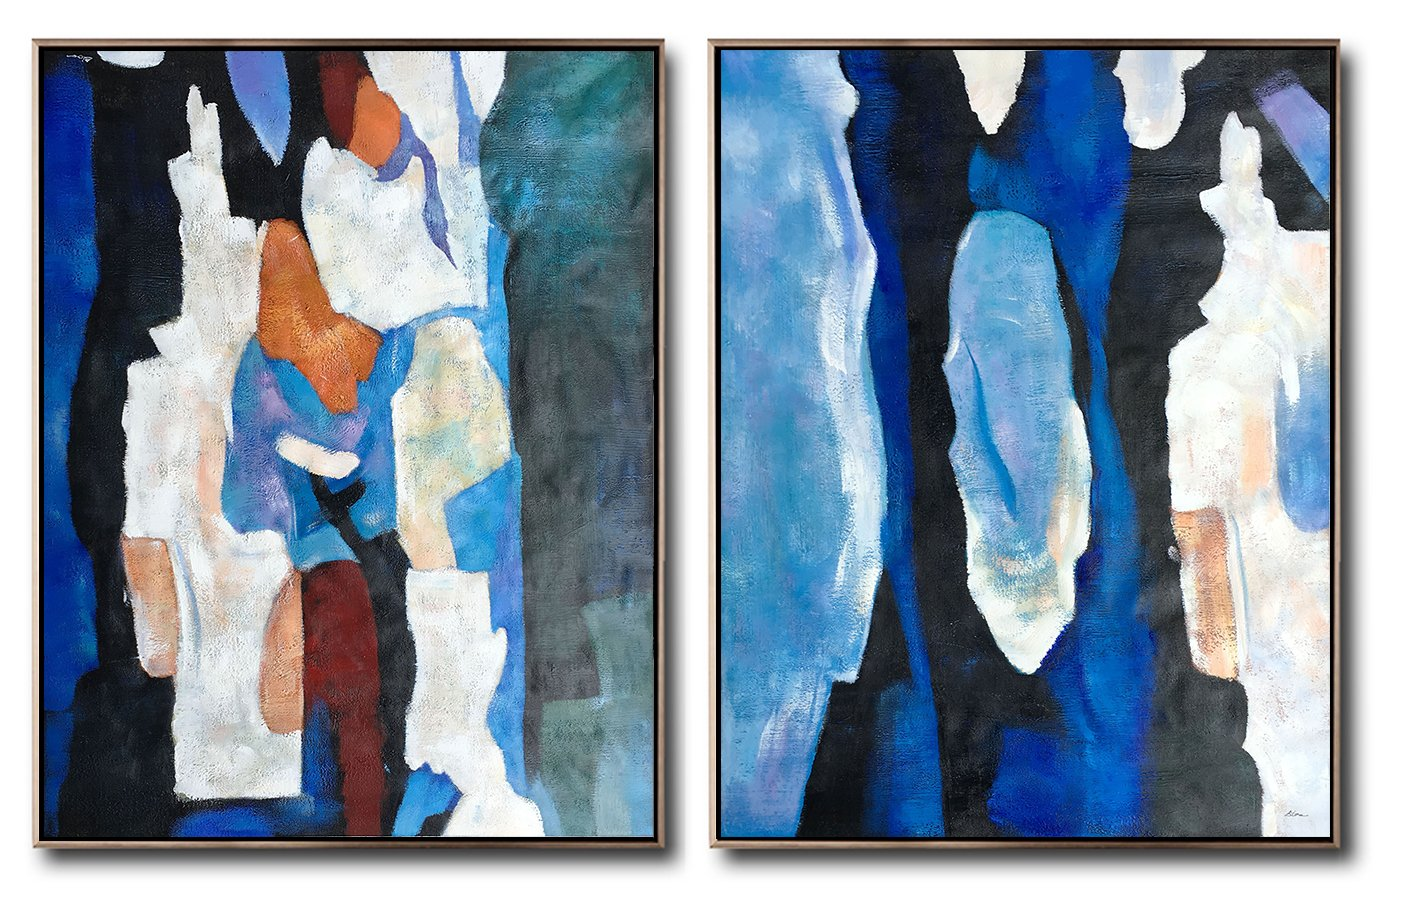 Large Modern Abstract Painting,Large Set Of 2 Blue Minimalist Painting On Canvas,Wall Art Ideas For Living Room,Blue,Orange,Brown,Black,White.etc